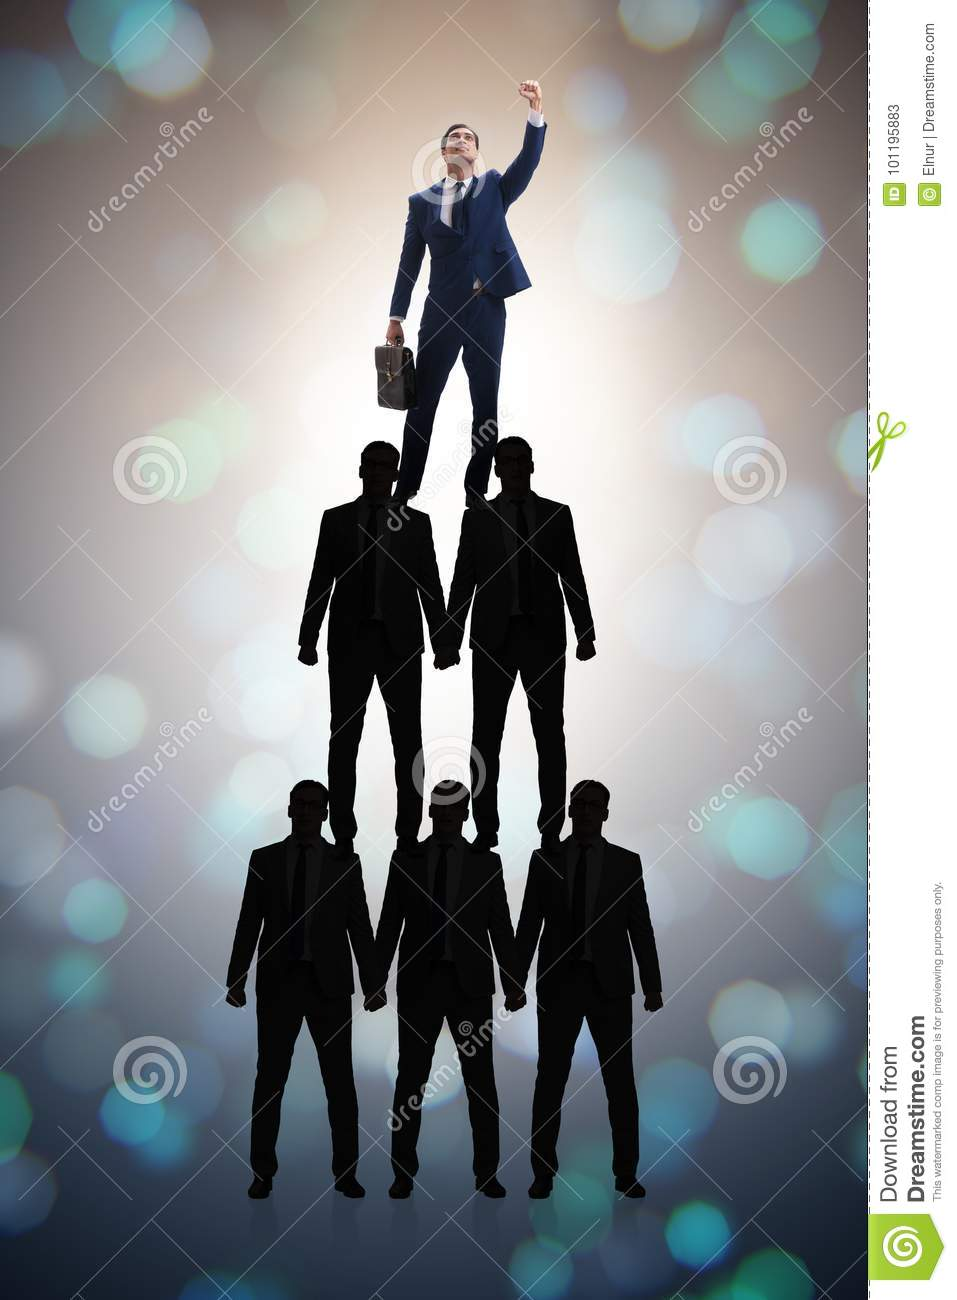 The businessman at the top of organisation chart